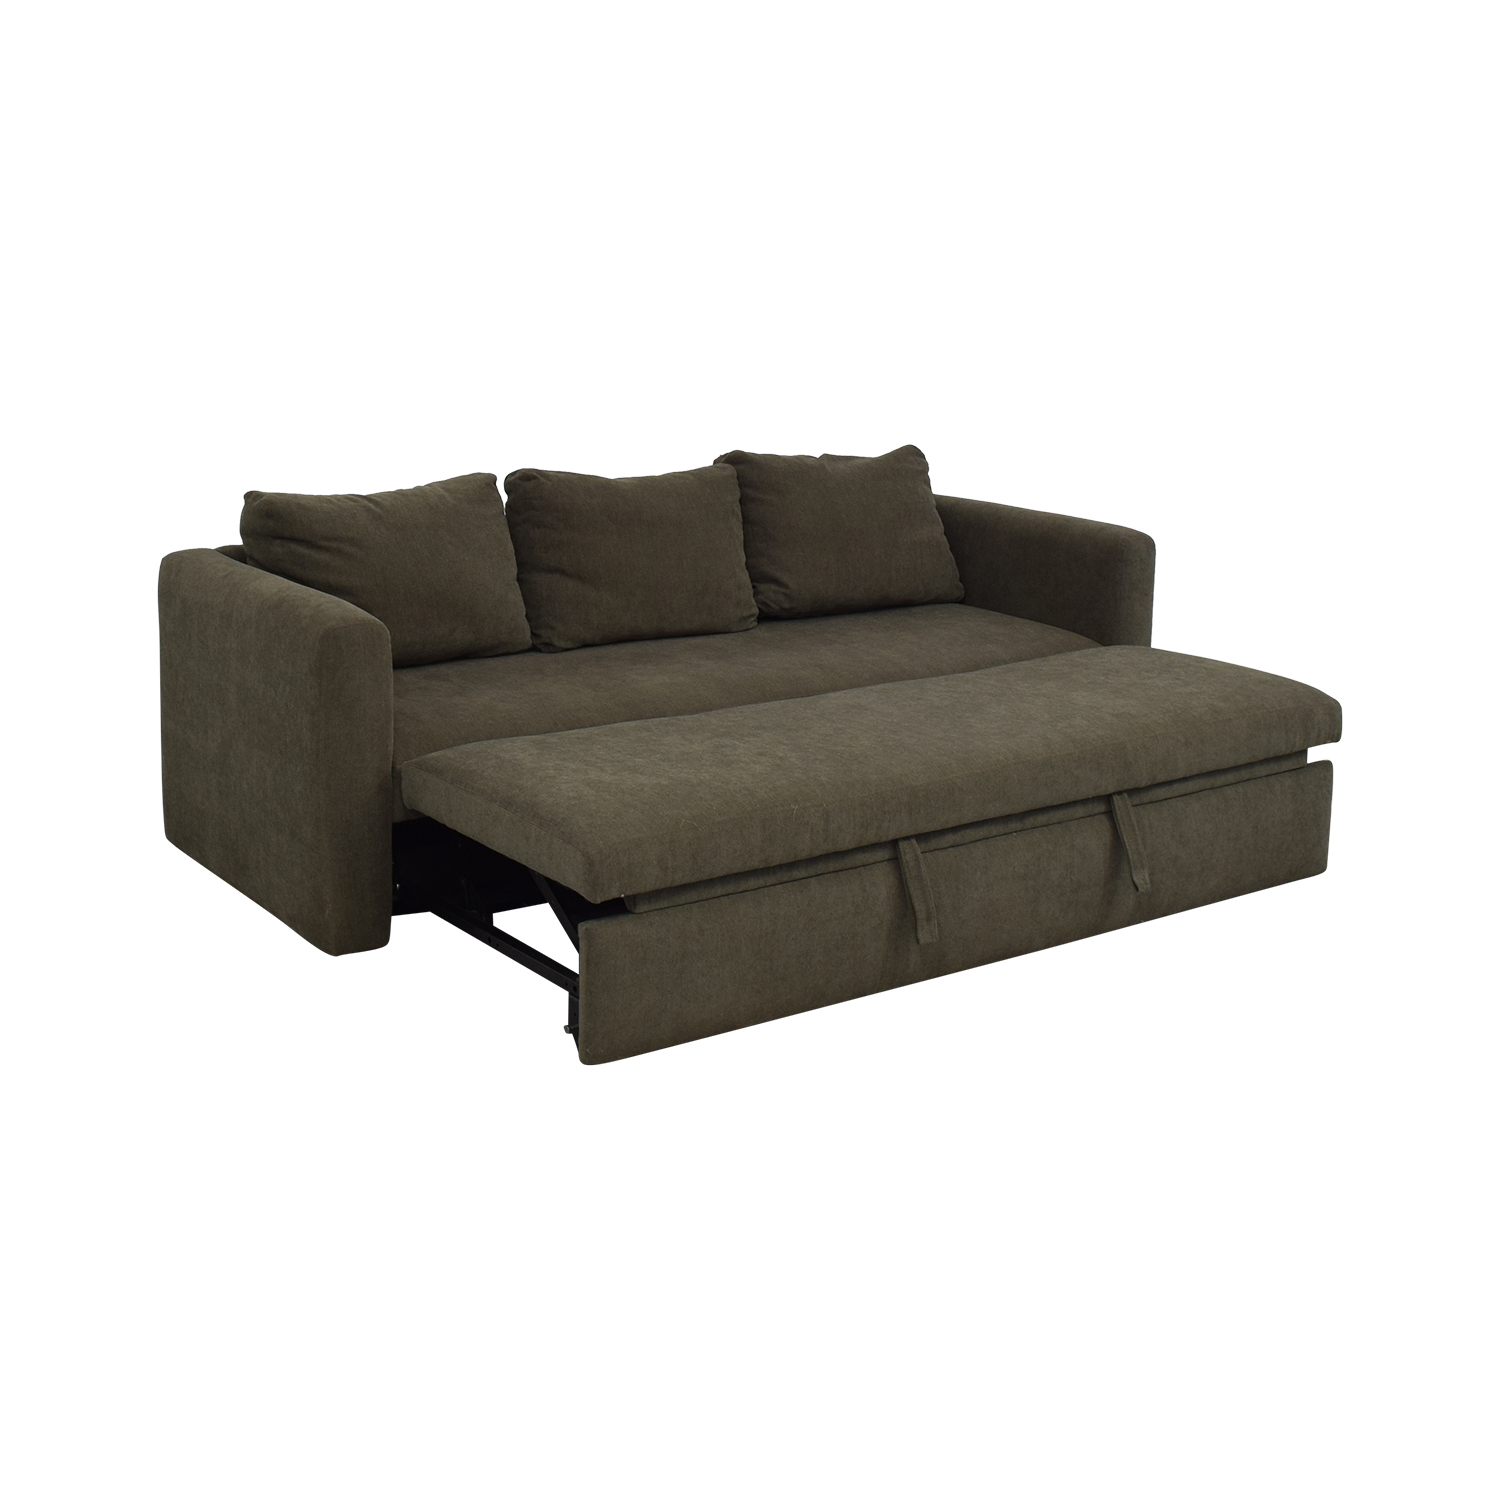 "buy Room & Board Oxford Custom 86"" Pop-Up Platform Full Sleeper Sofa Room & Board Sofa Beds"